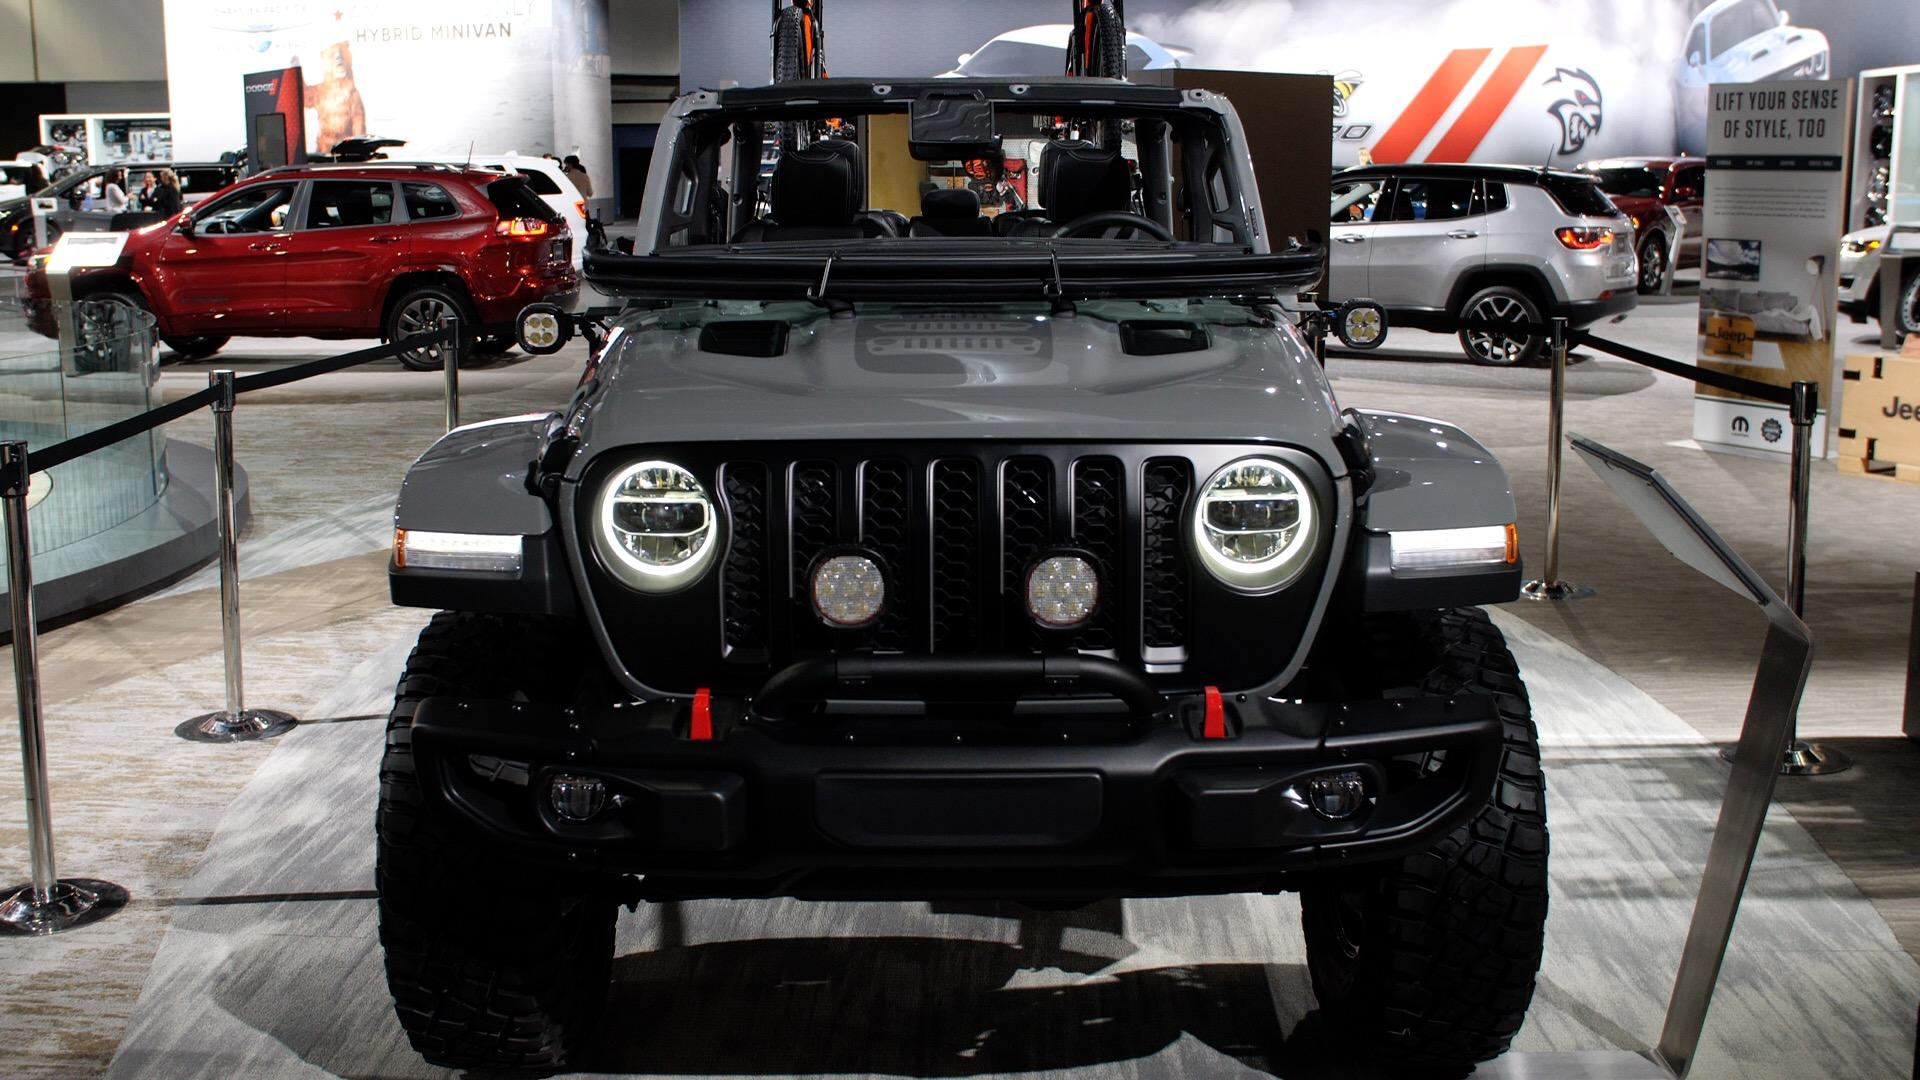 Video: Take your Jeep Gladiator to the next level with Mopar acccessories